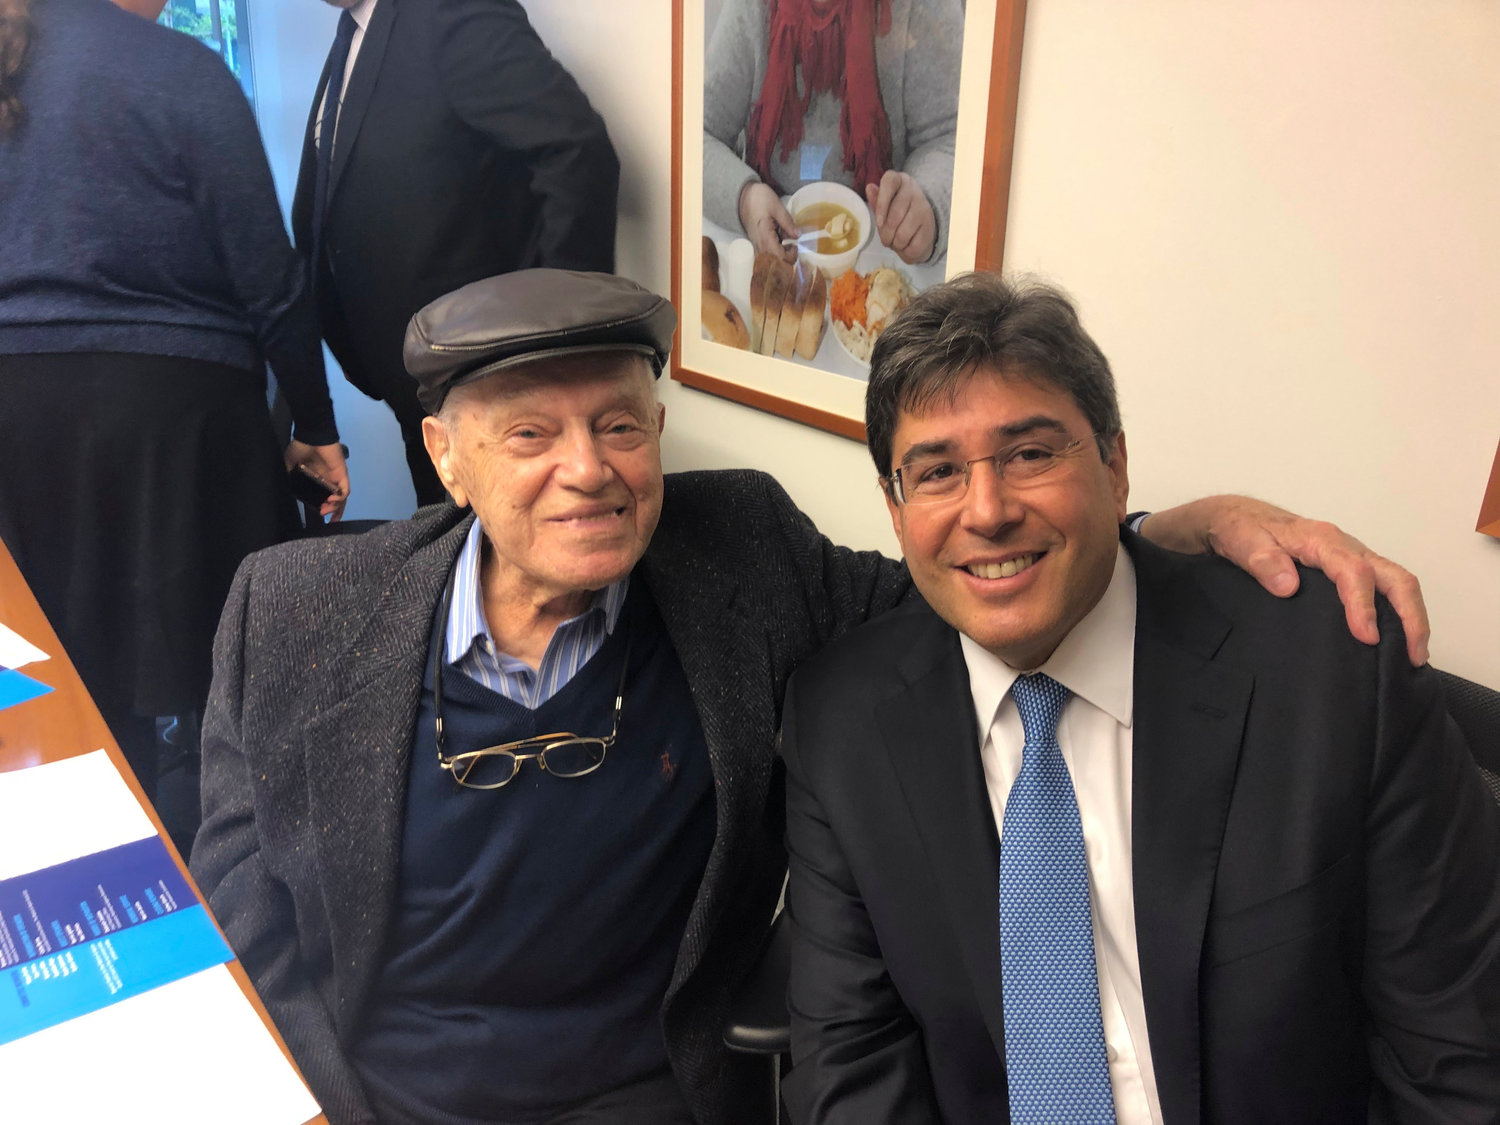 The UJA-Federation of New York's Yom HaShoah commemoration included stories from two Holocaust survivors and Gural JCC members, Bernie Igielski and Marvin Jacobs. CEO Eric Goldstein, right, with Jacobs.